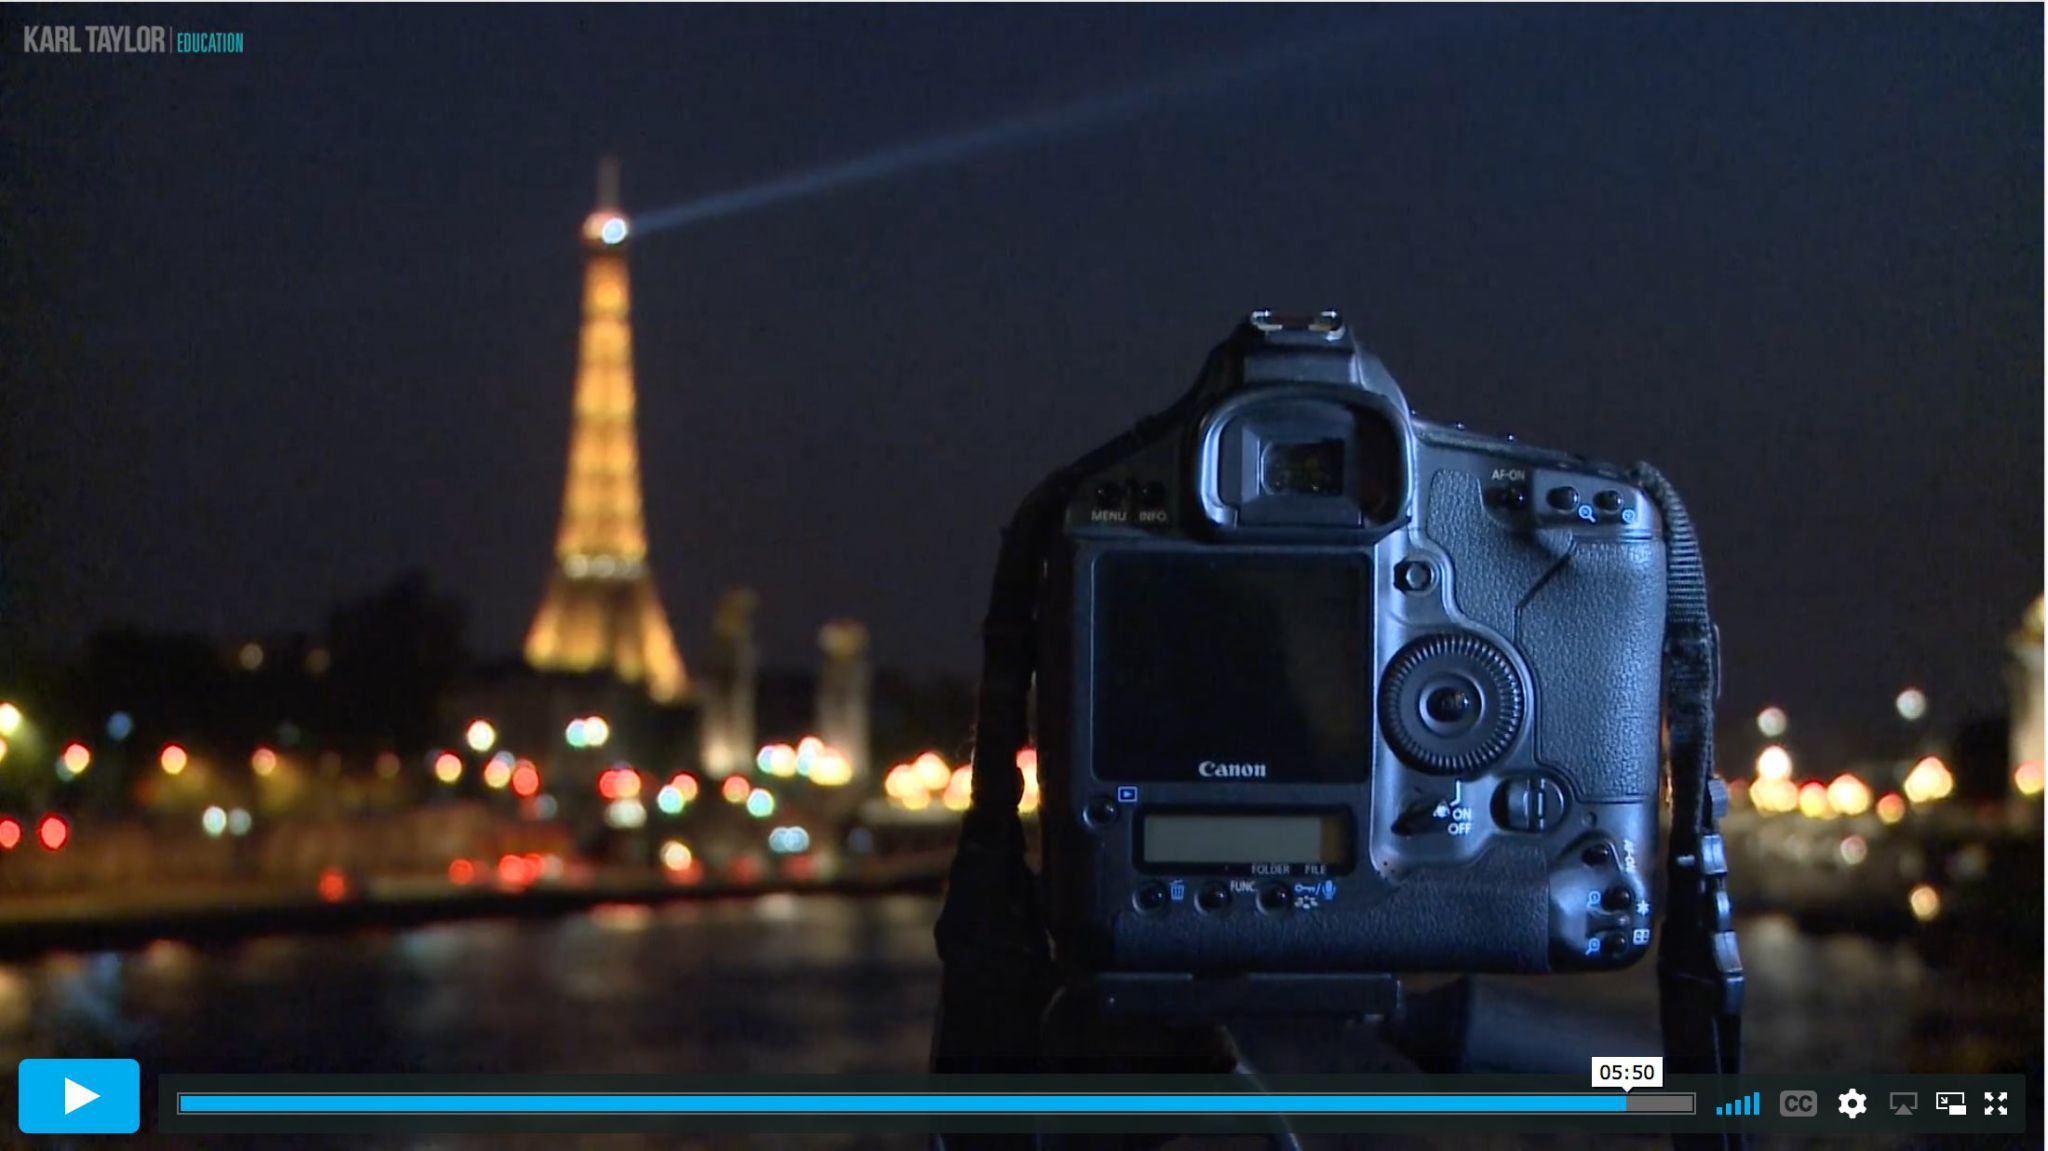 Photographing motion in a cityscape at night